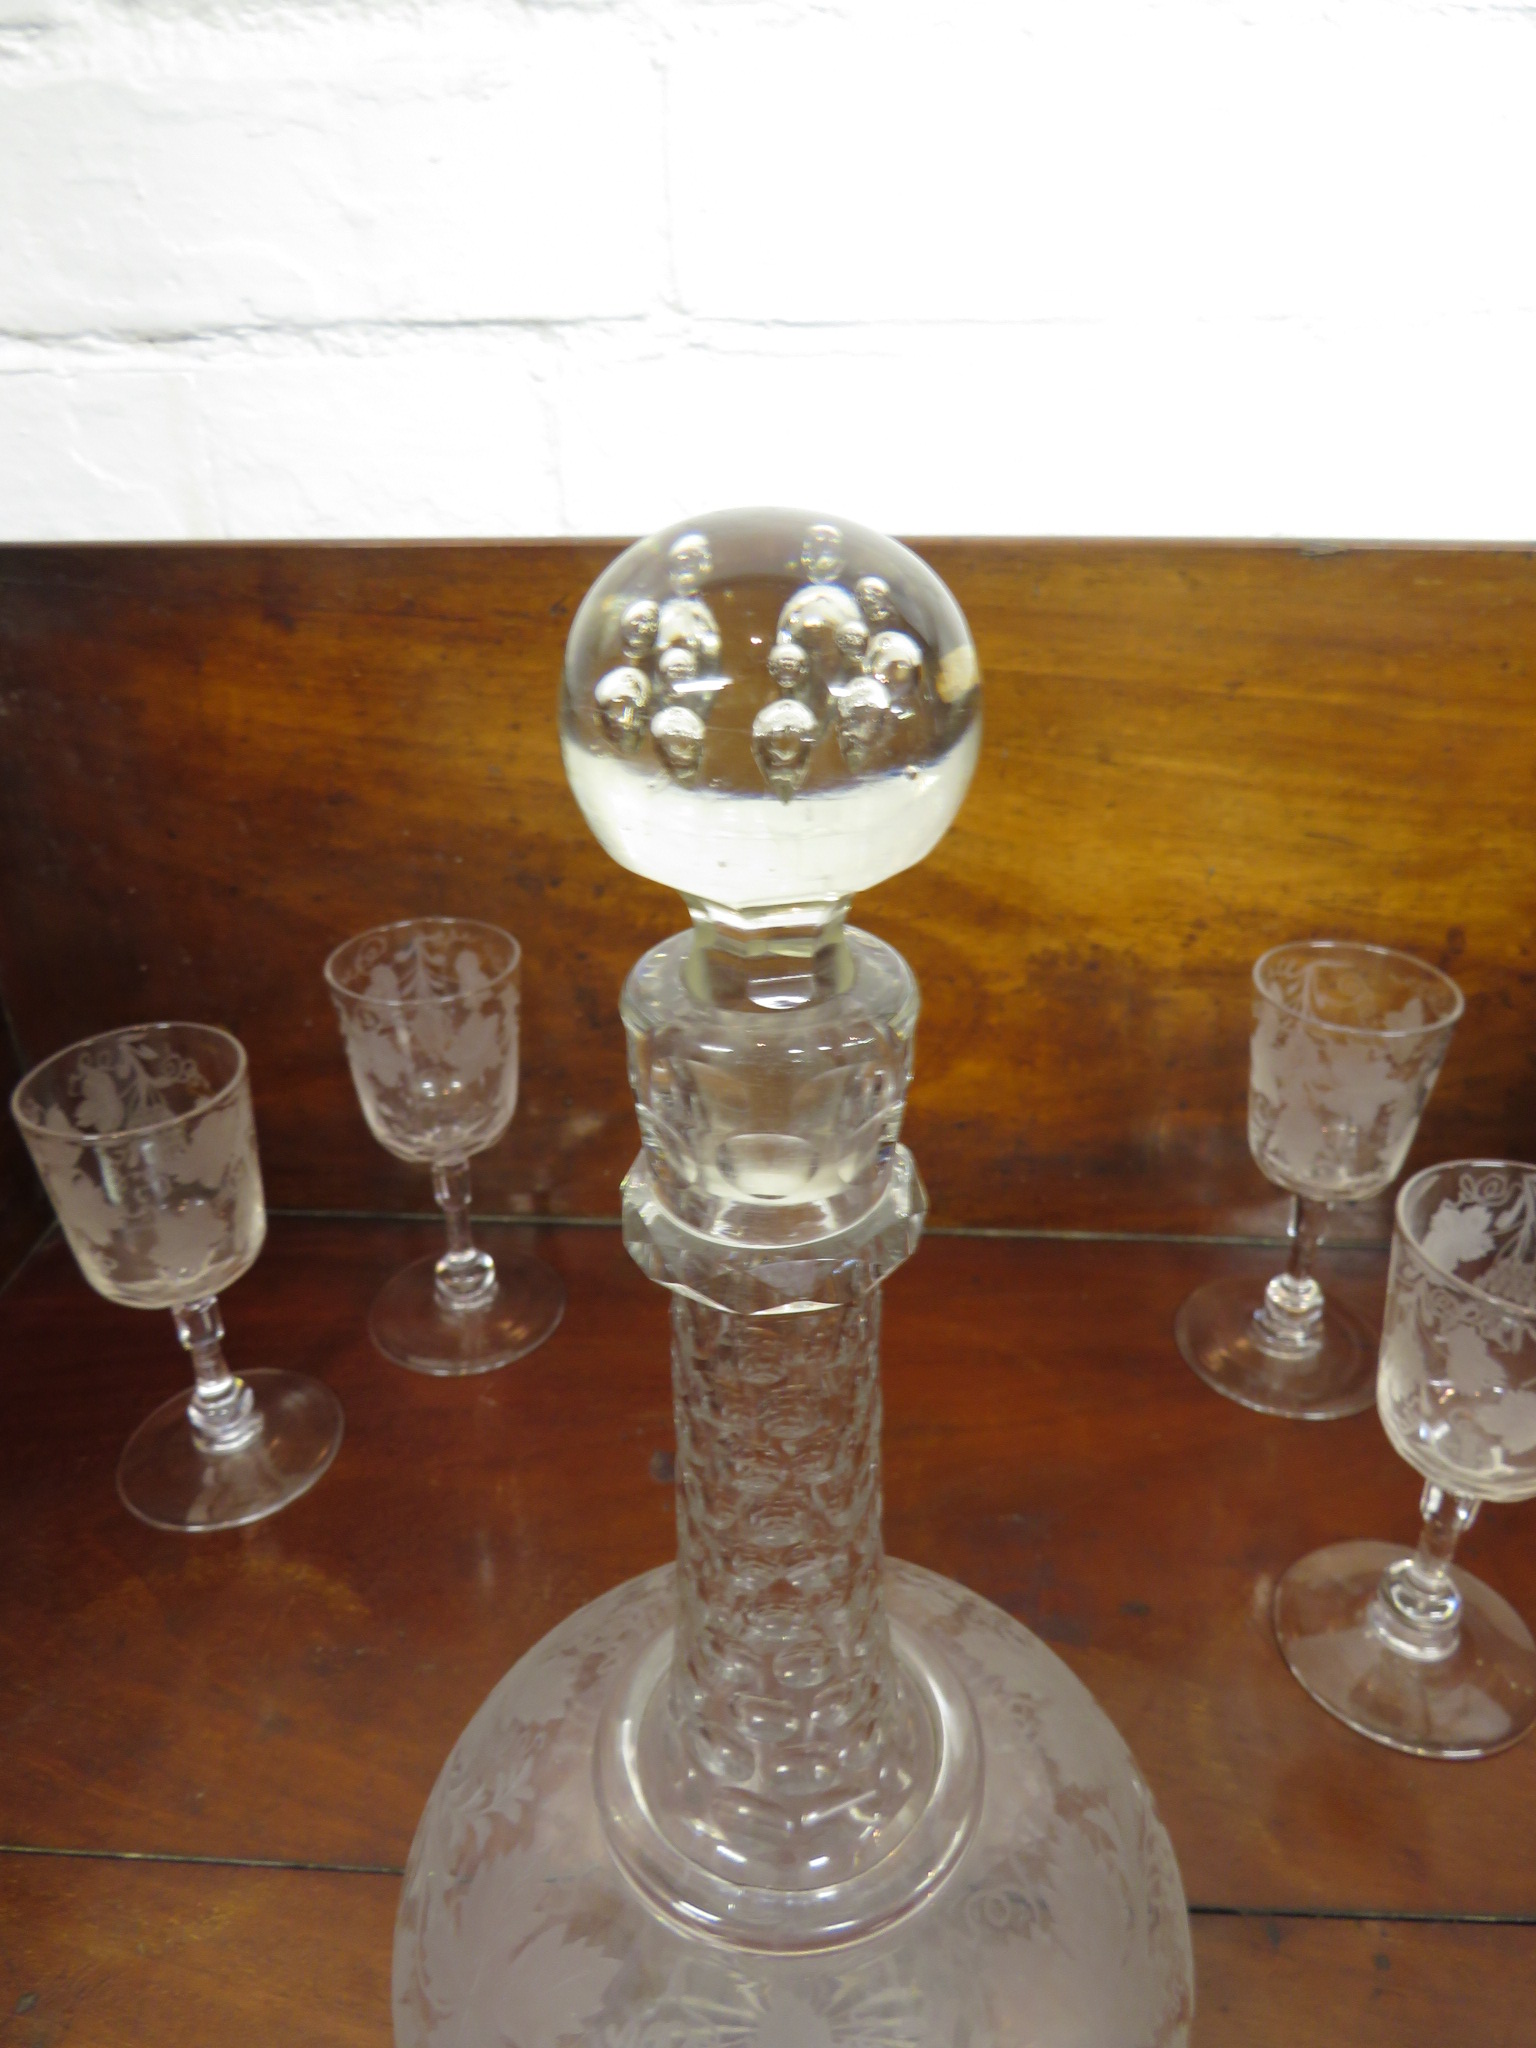 Lot 119 - Four 19th century wine glasses, the bowls etched with vines, the stem with bulb above the foot and